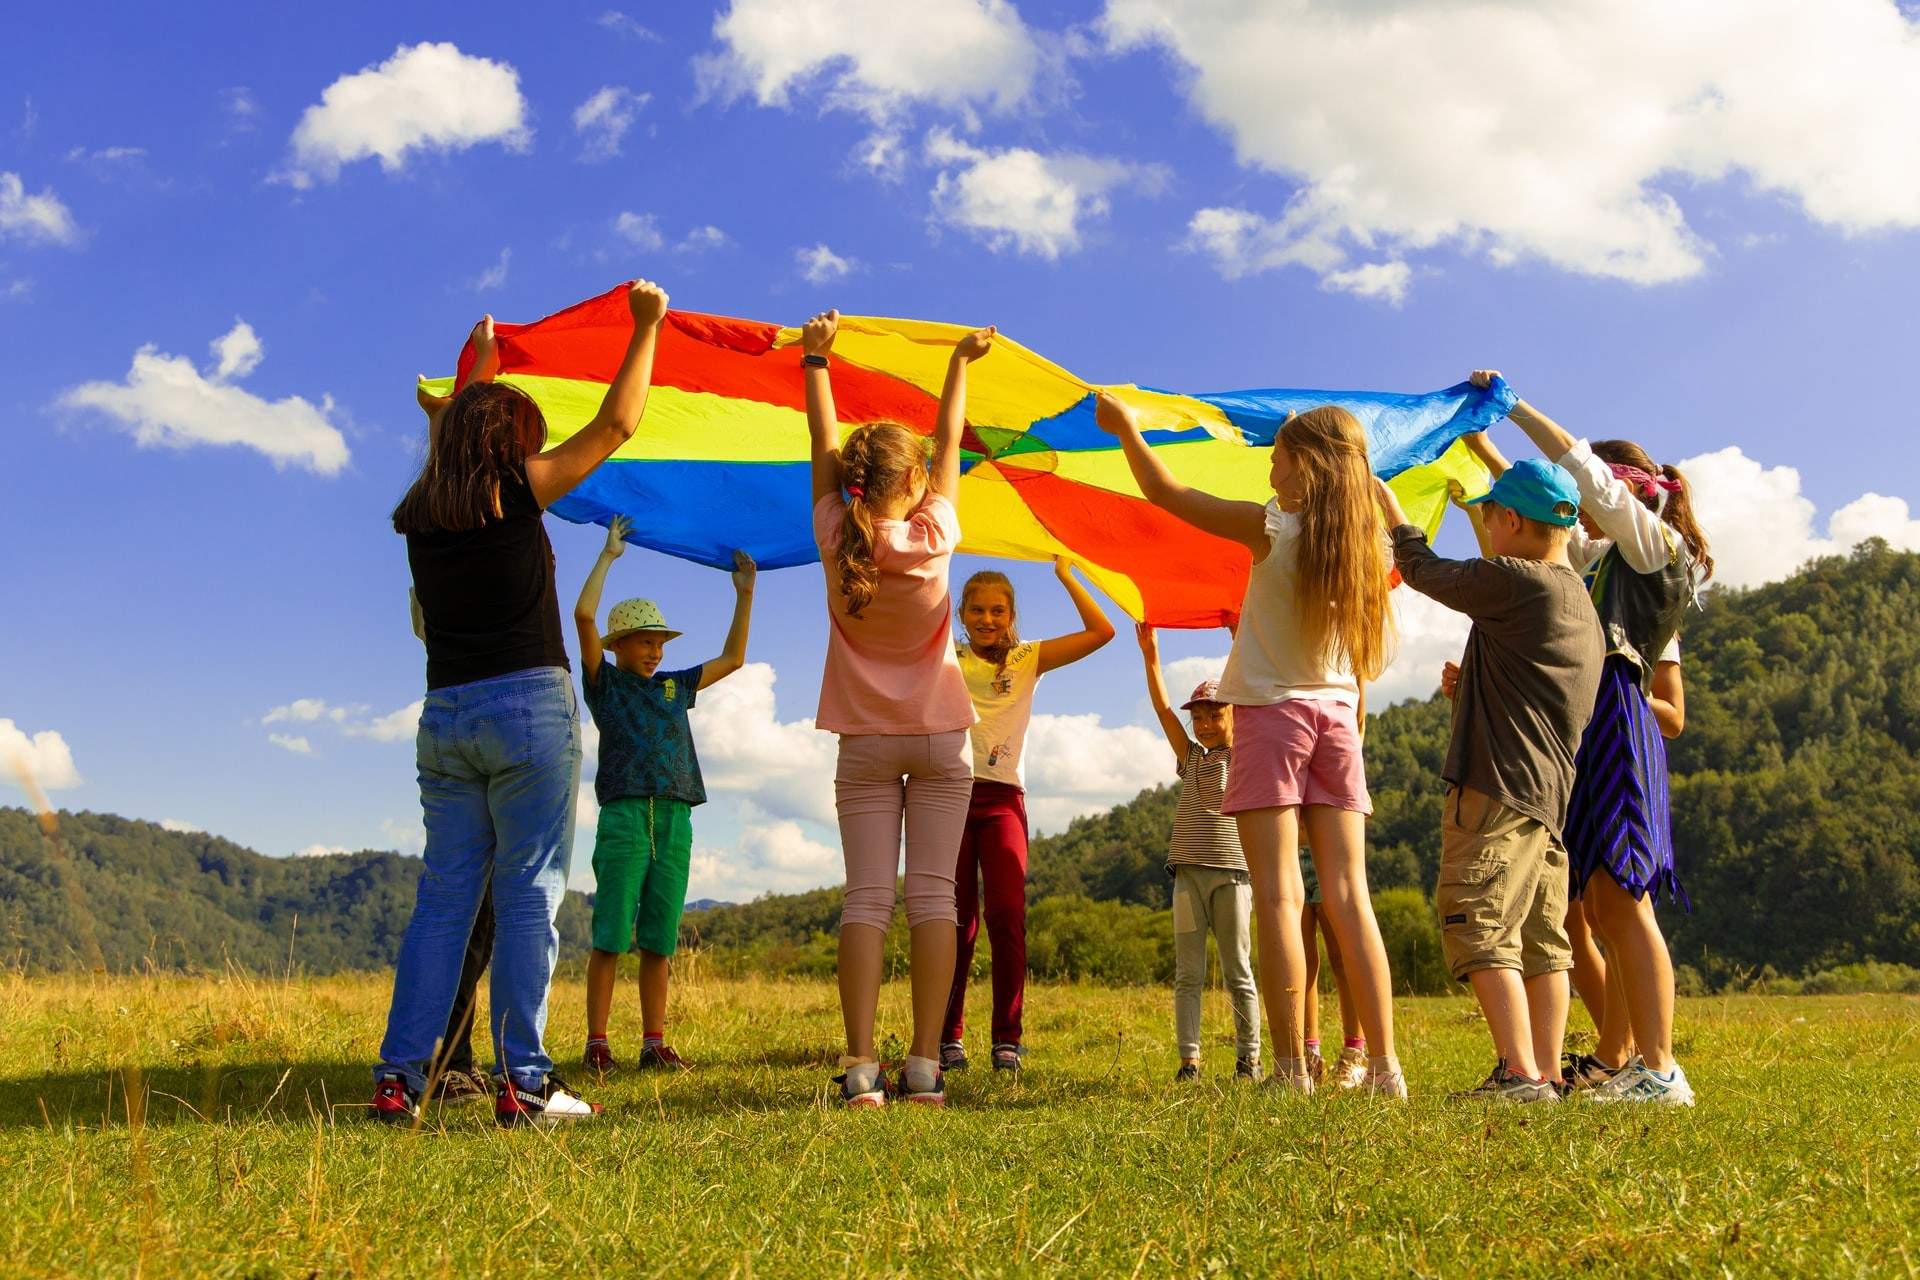 A group of students stands outside holding a colorful circle of fabric as they play active classroom games.